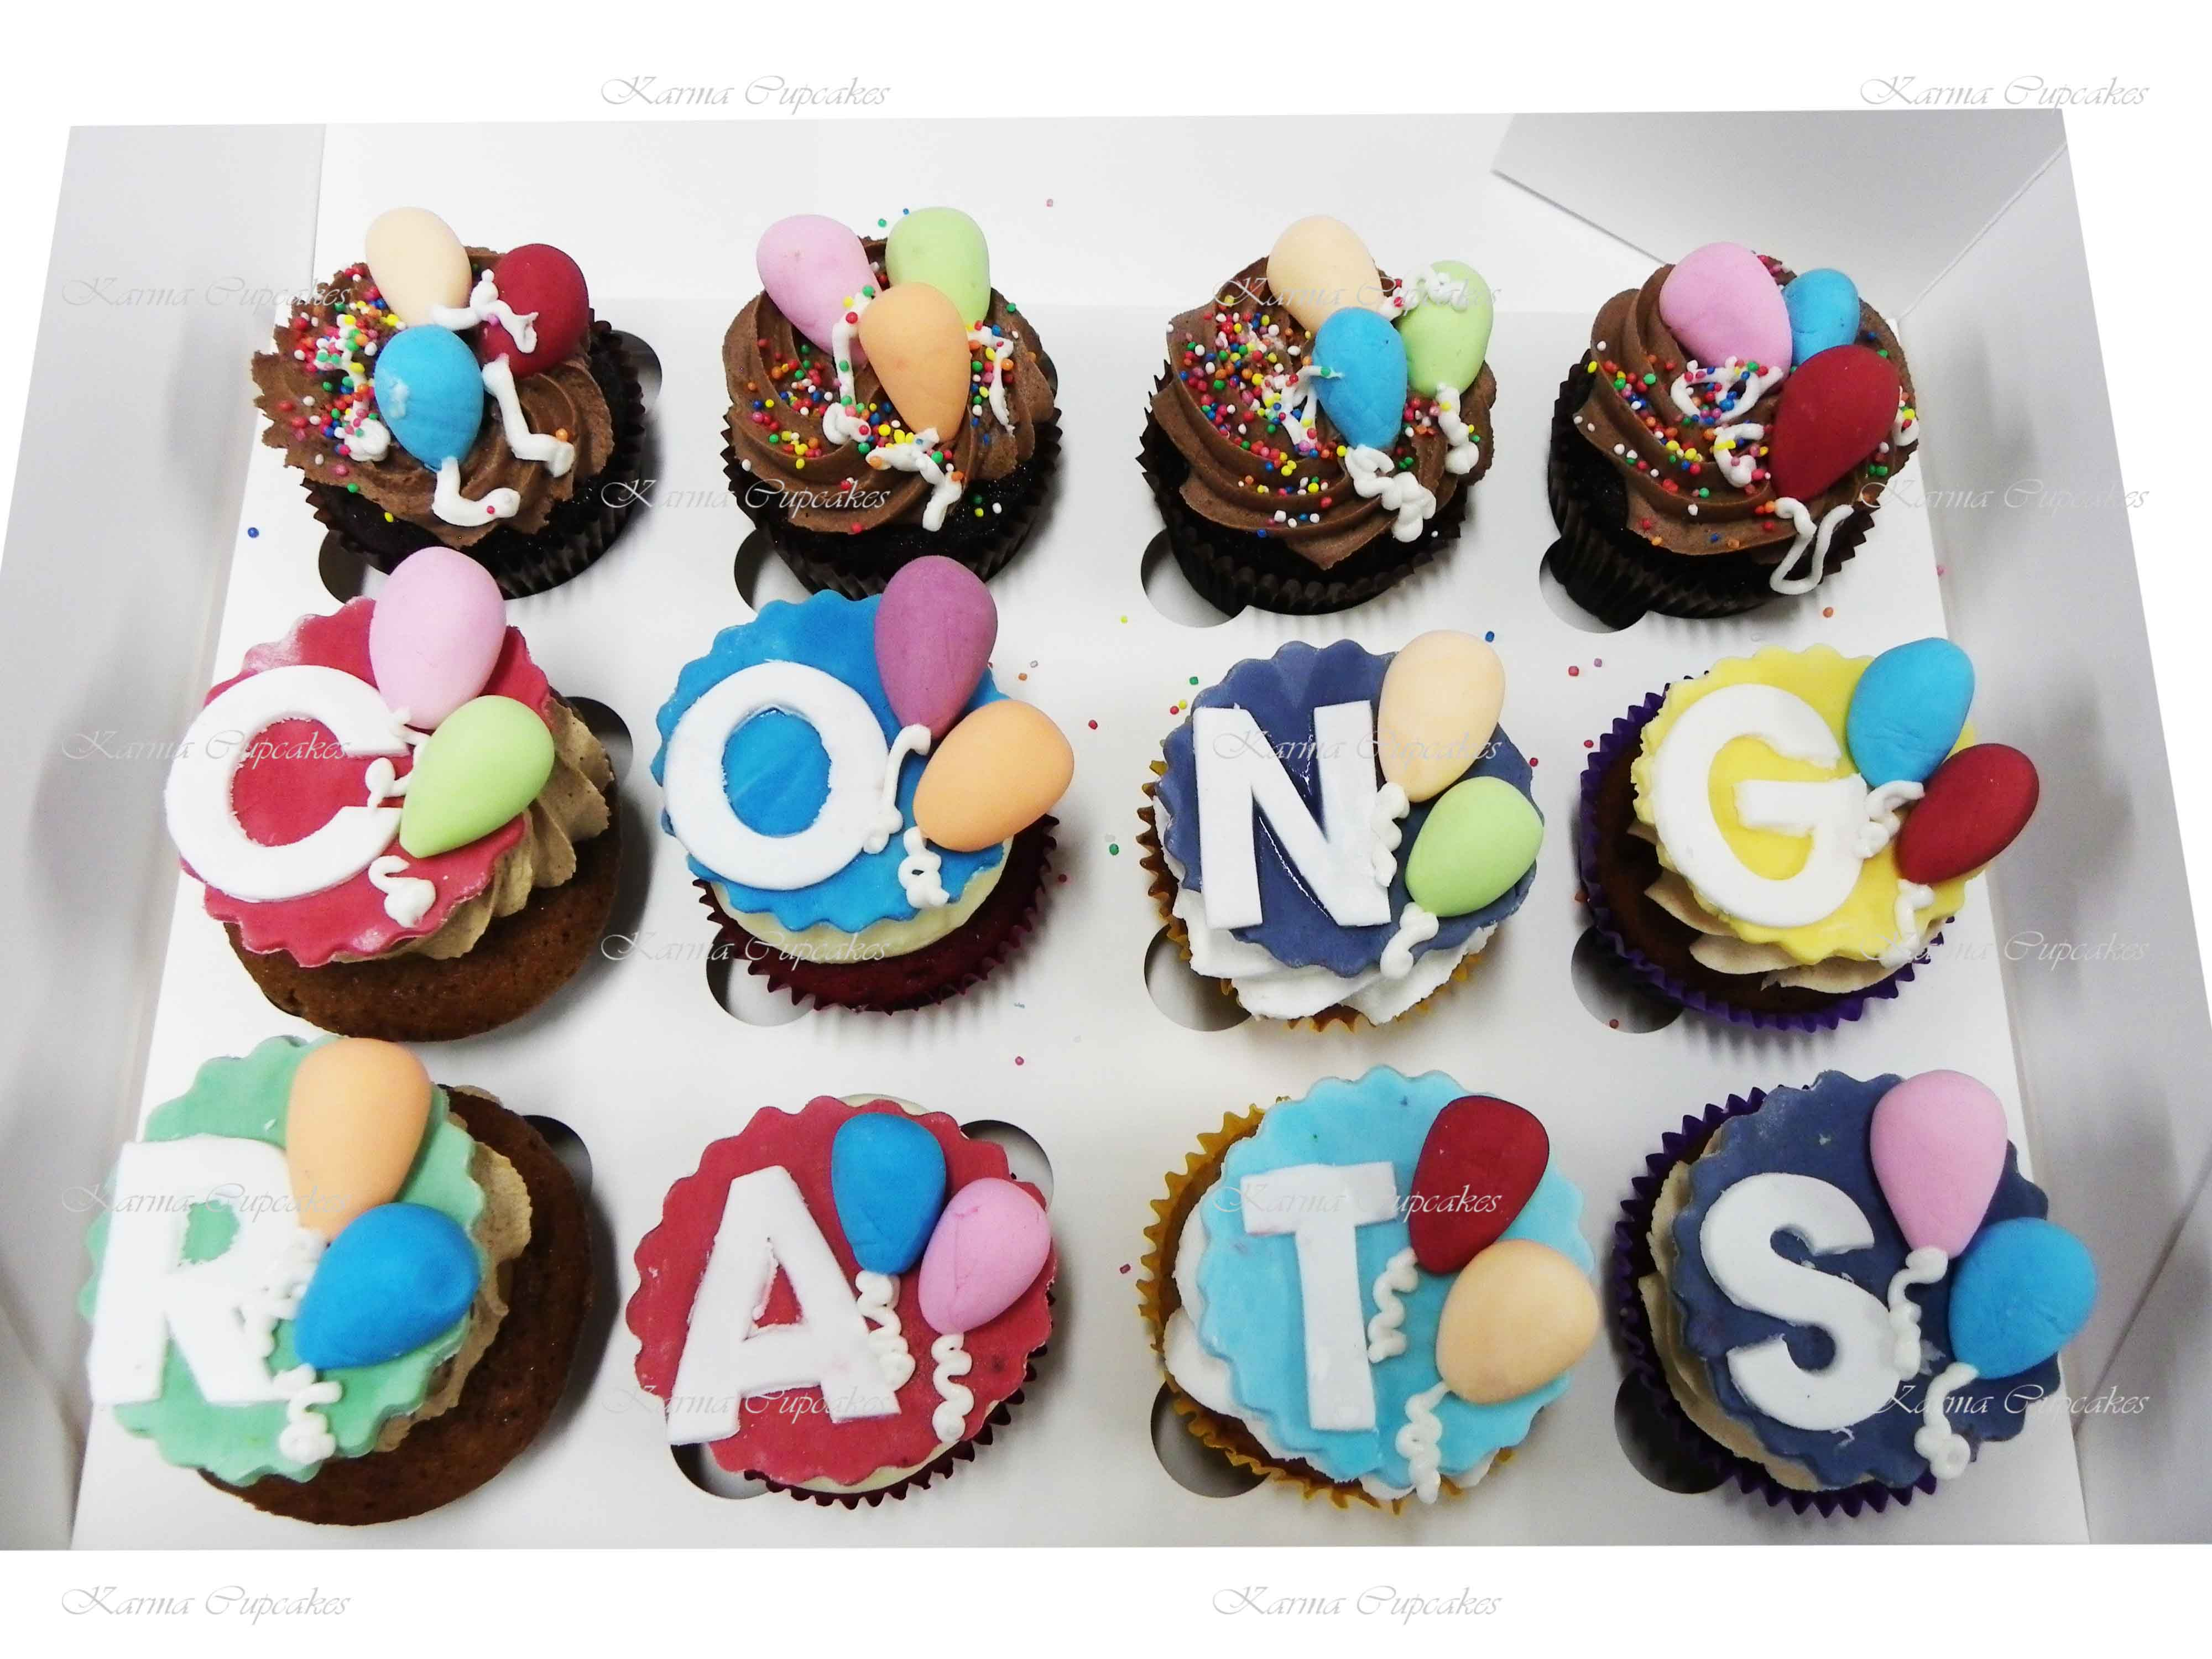 Personalised Cupcakes with Balloons - CONGRATS